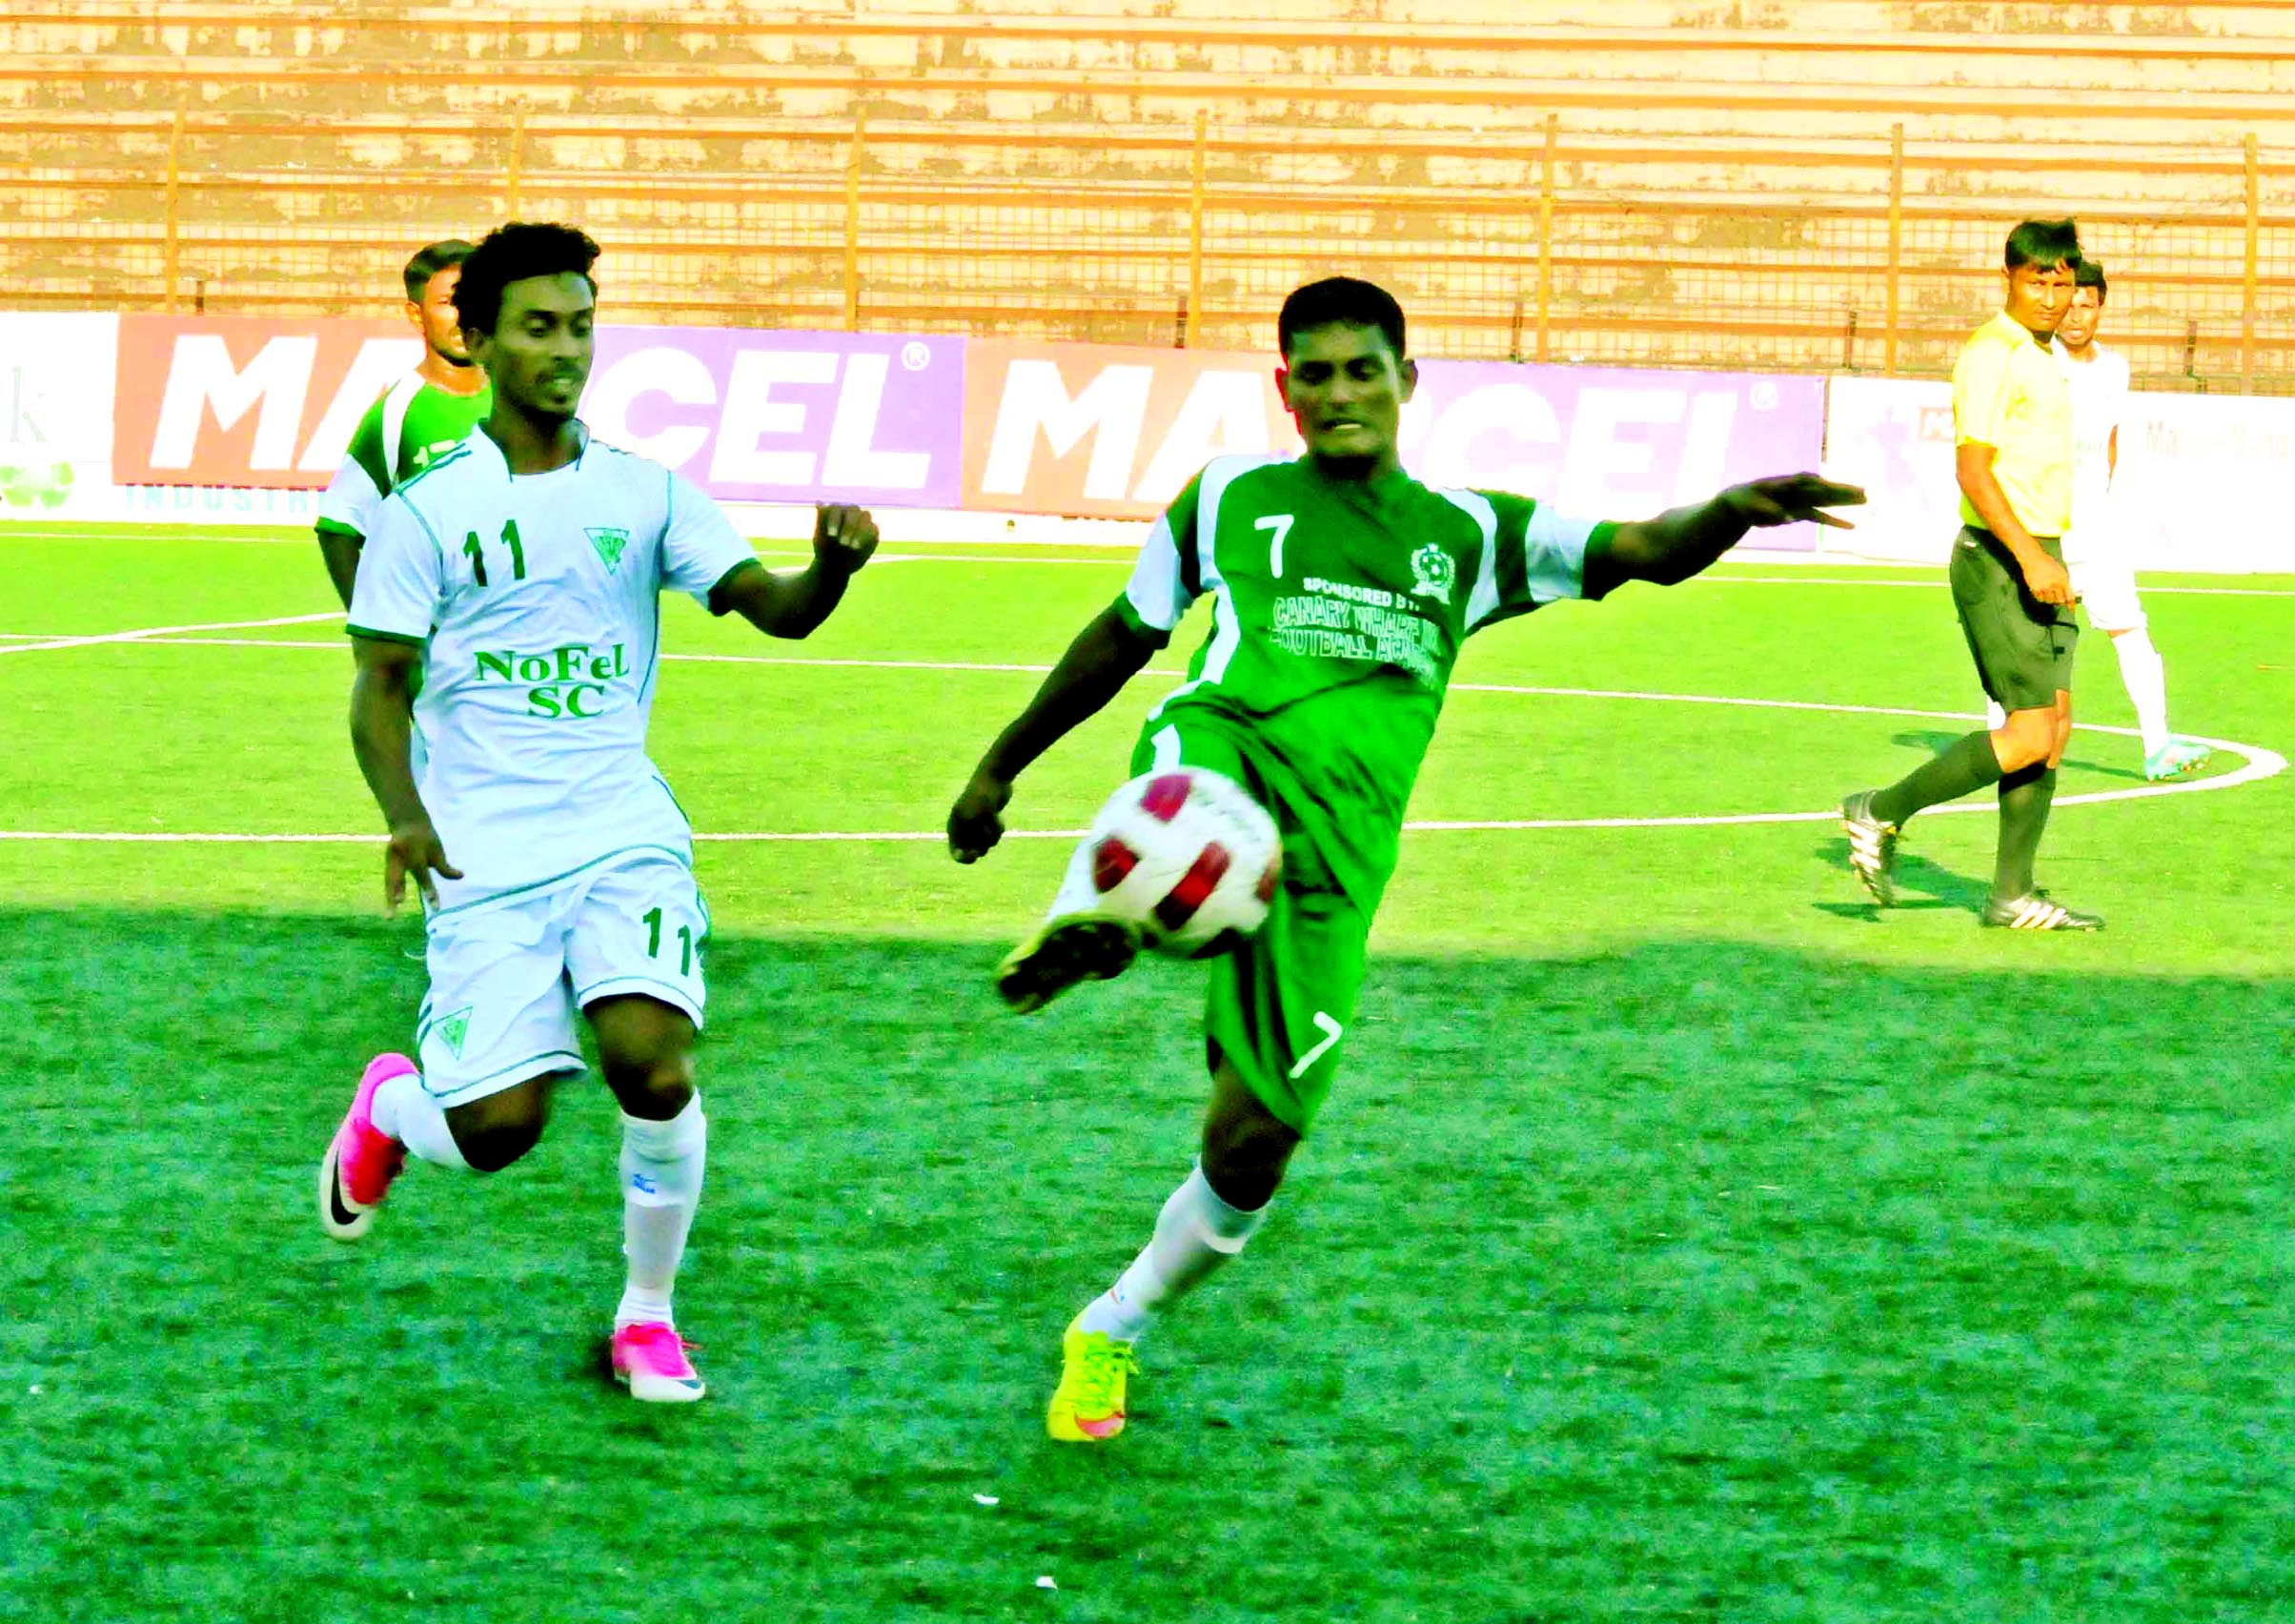 A view of the match of the Marcel Bangladesh Championship League Football between Nofel Sporting Club and Motijheel T&T Club at the Bir Shreshtha Shaheed Sepoy Mohammad Mostafa Kamal Stadium in the city's Kamalapur on Friday. The match ended in a goalless draw.